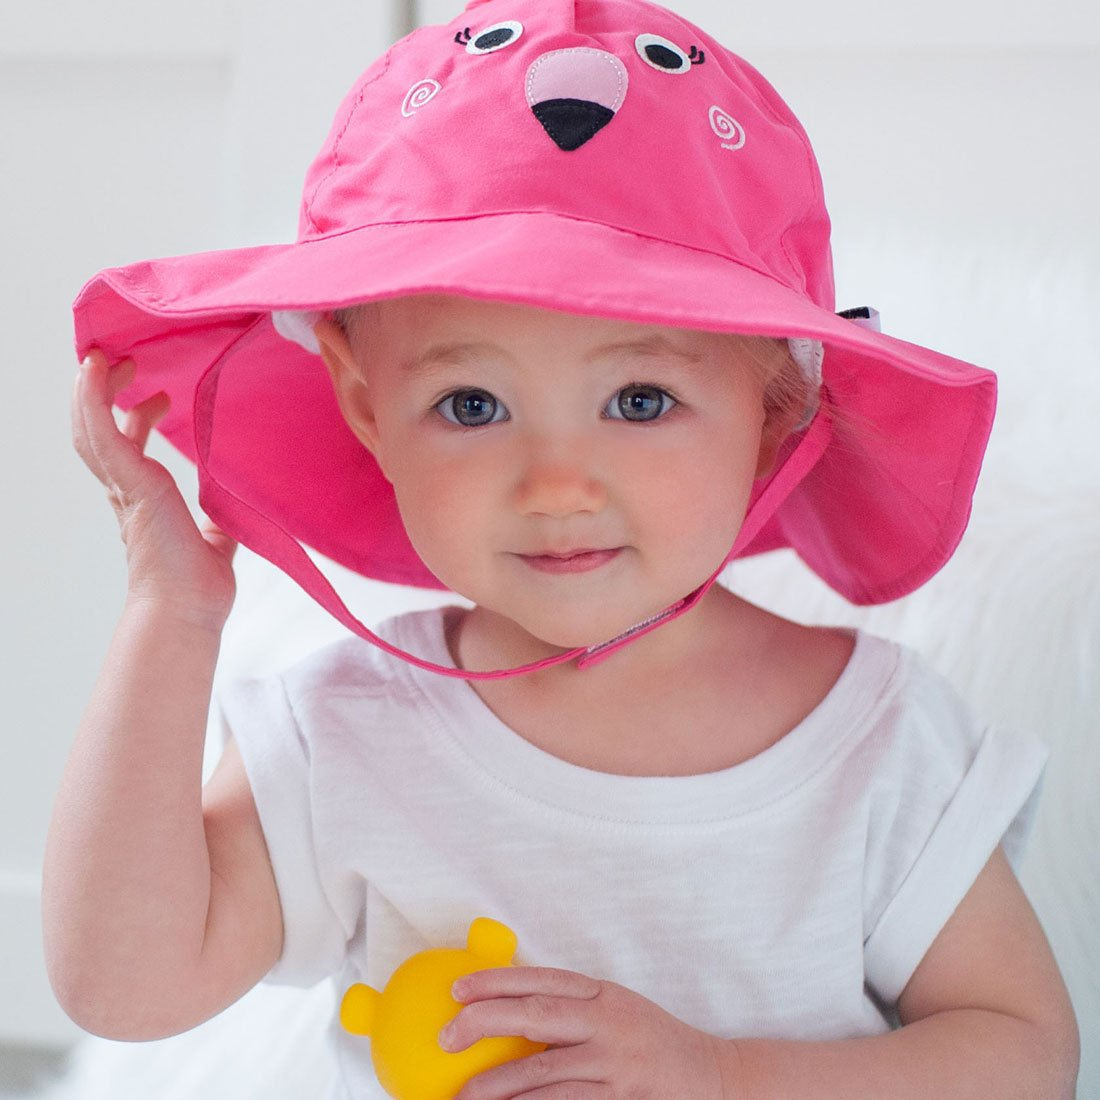 841db10d1 ZOOCCHINI UPF50+ Baby Sun Hat - Franny the Flamingo